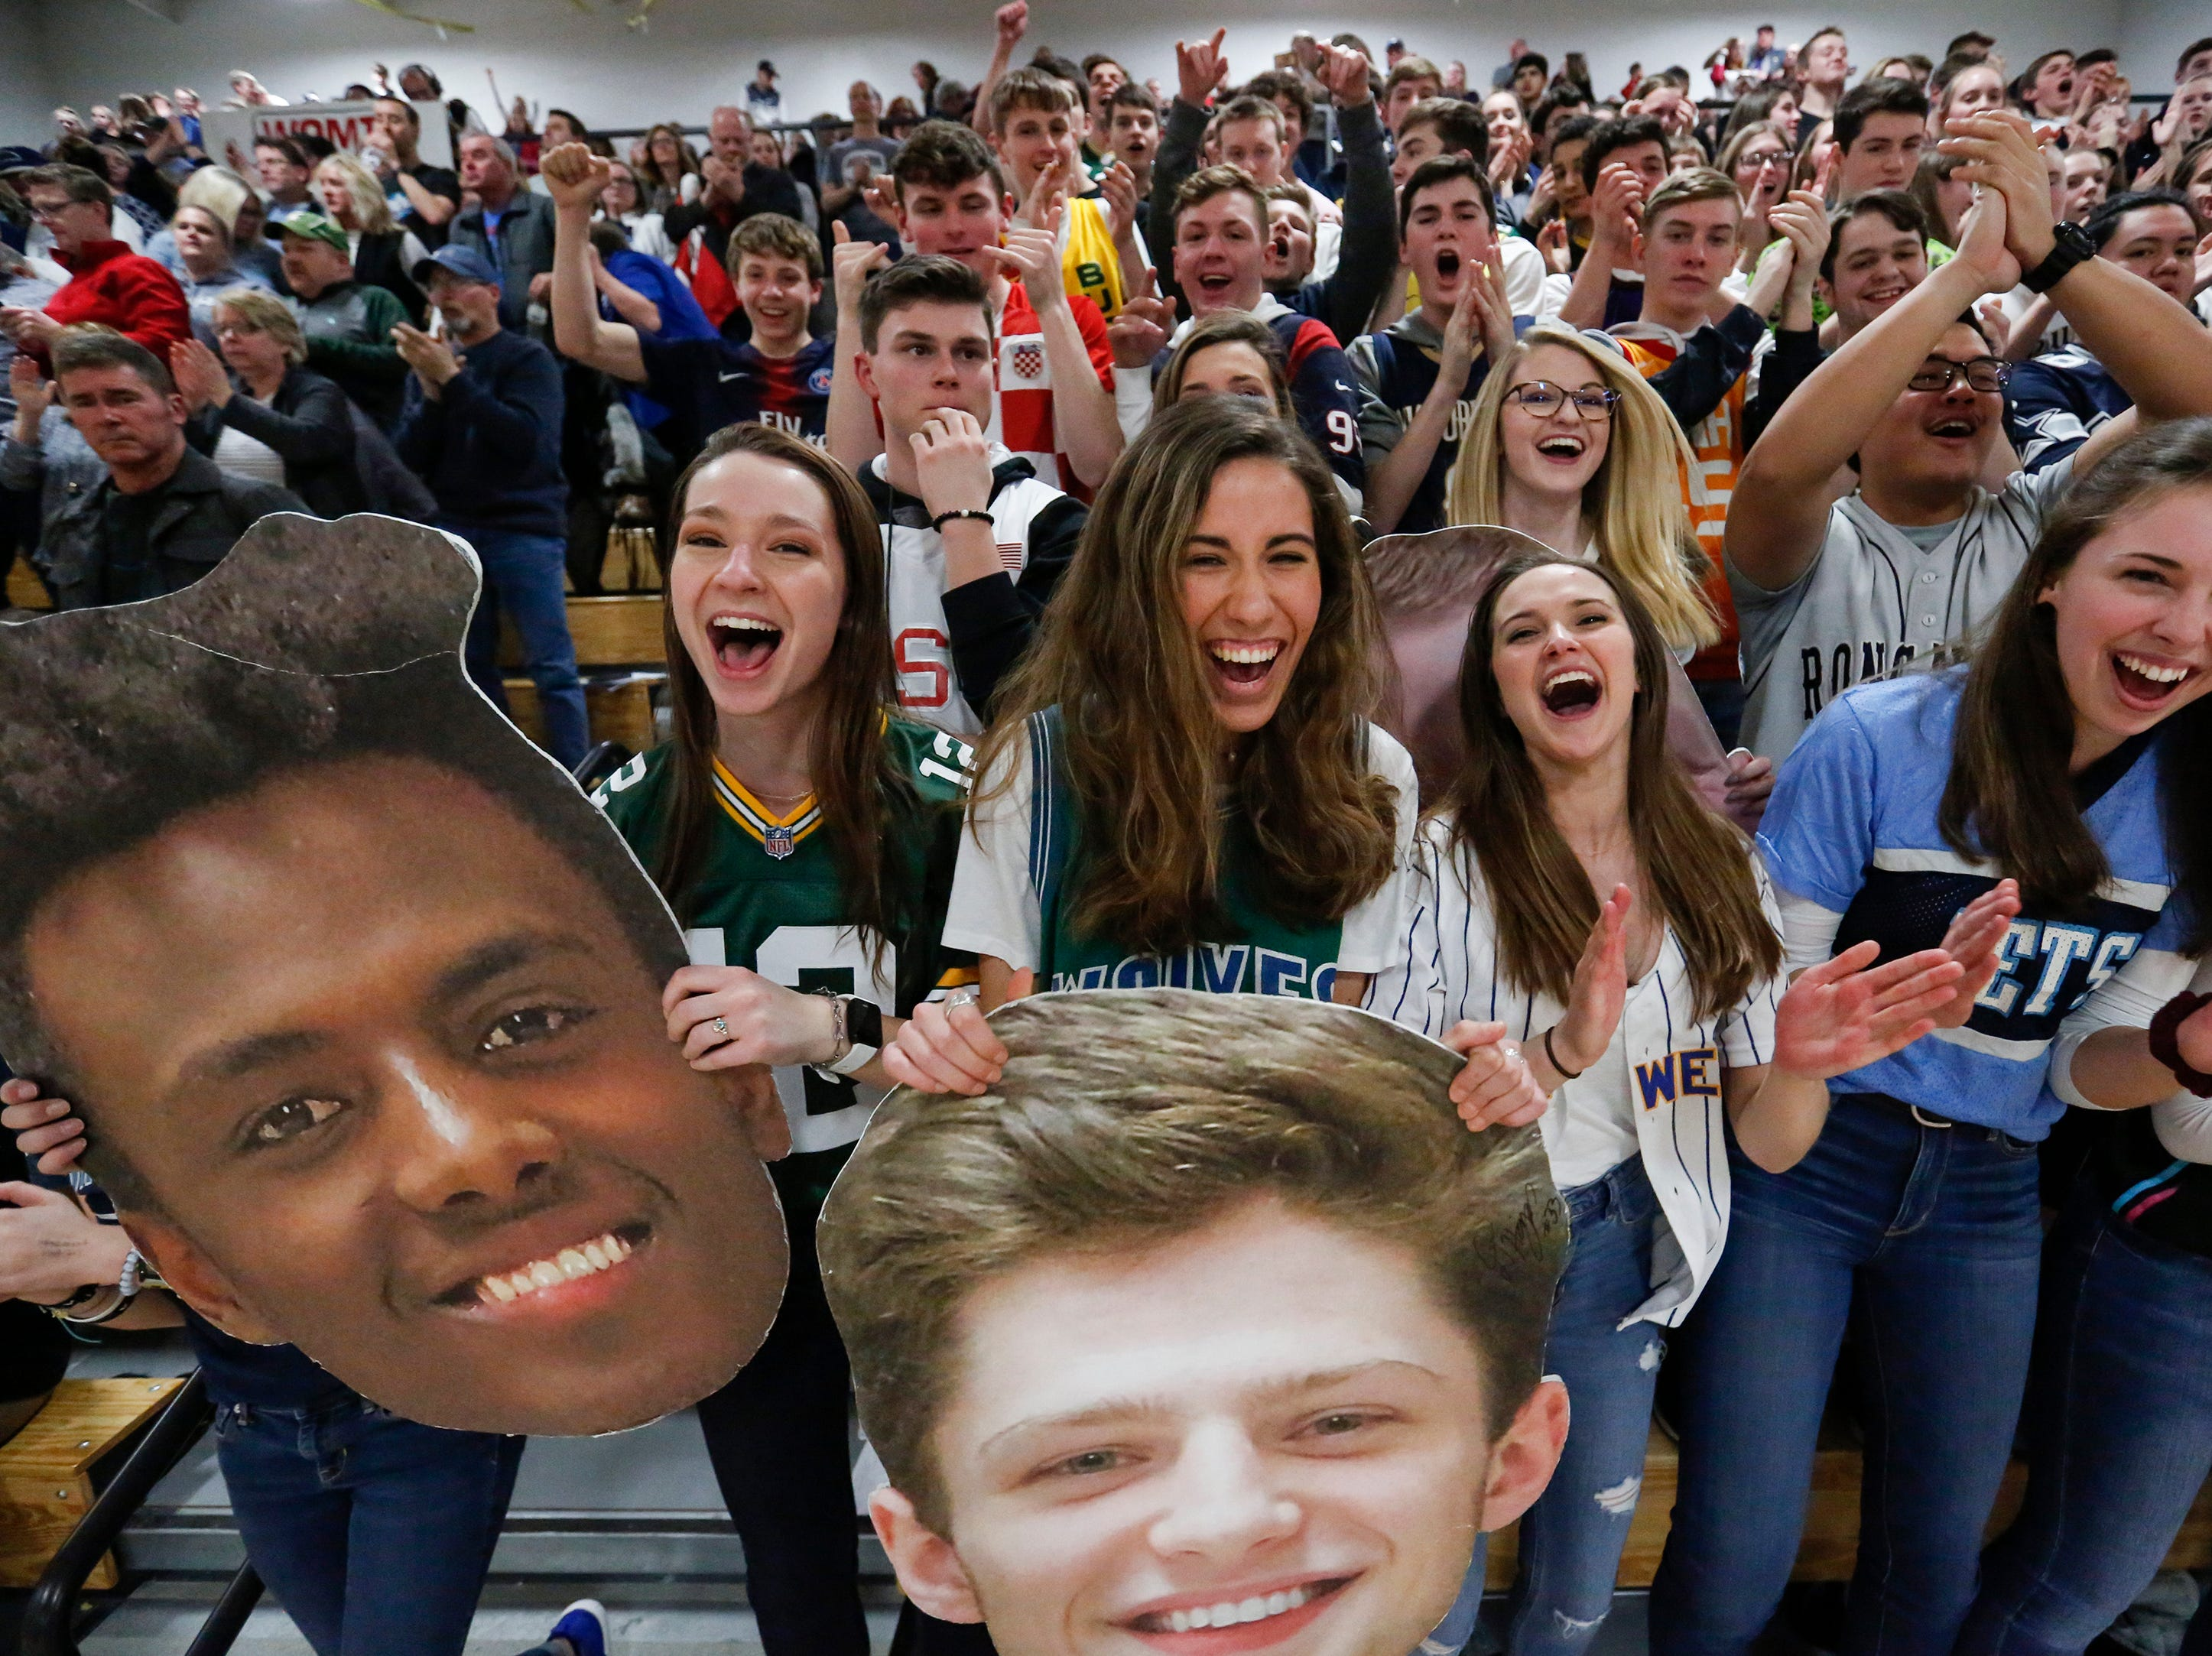 Roncalli's student section cheers after the Jets defeat the Manitowoc Lutheran Lancers 53-44 in a WIAA Division 4 regional semifinal game at Roncalli High School Friday, March 1, 2019, in Manitowoc, Wis. Joshua Clark/USA TODAY NETWORK-Wisconsin